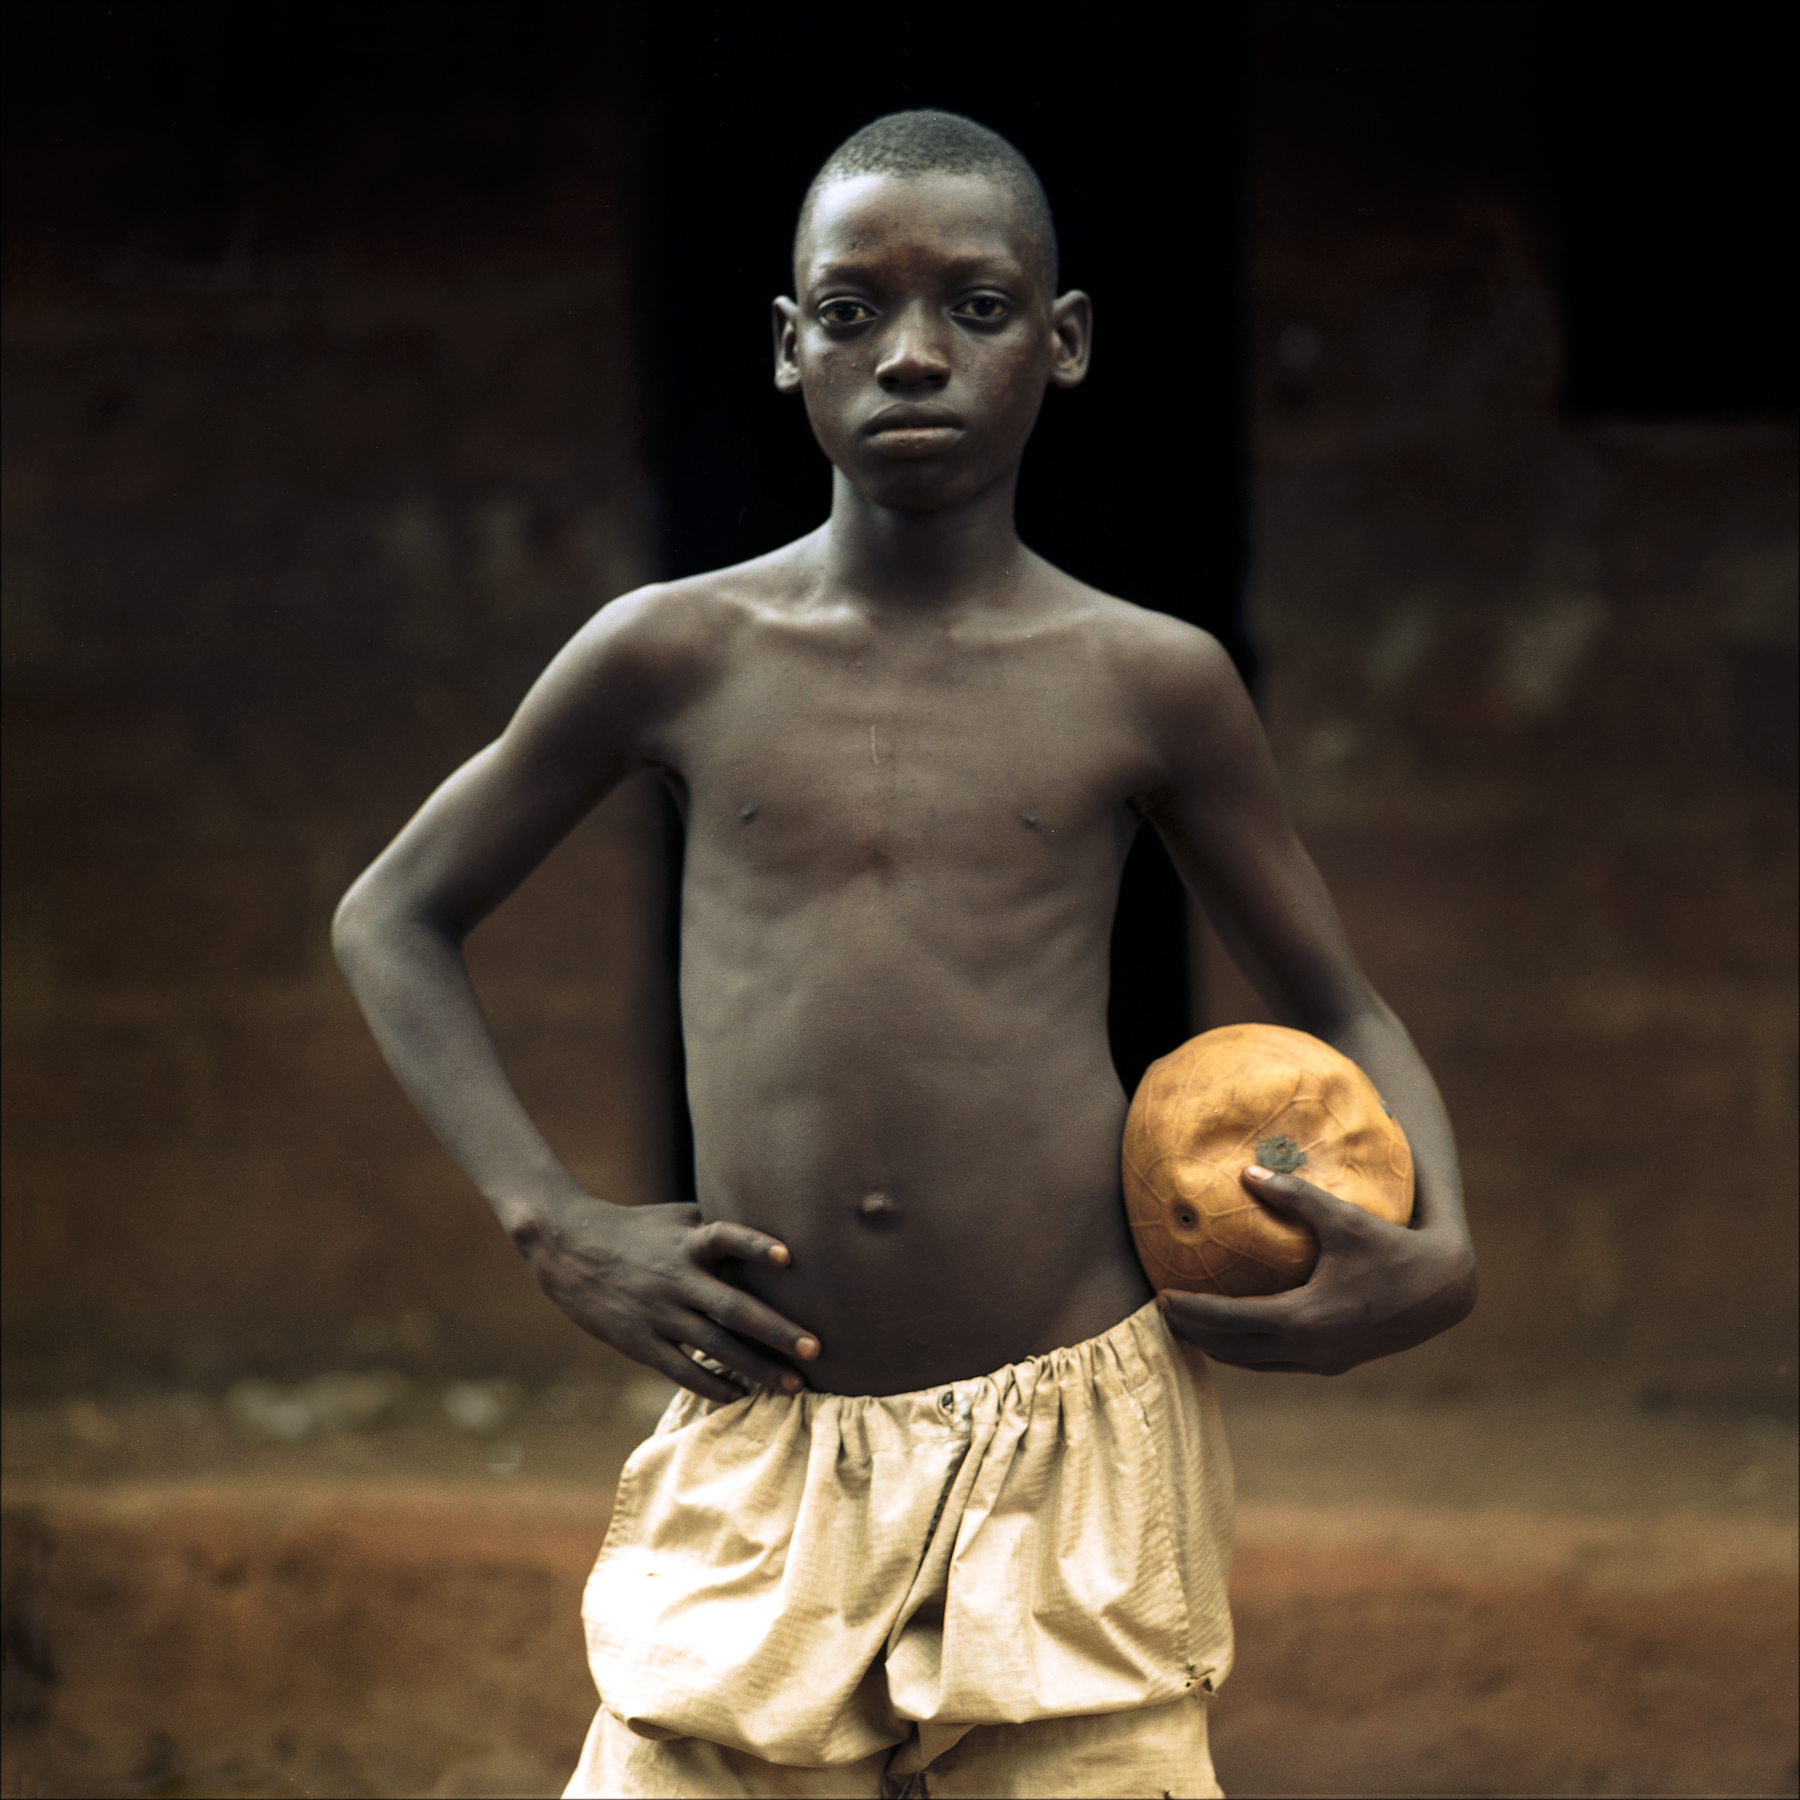 The captain of a local football team with his ball, Ketou.